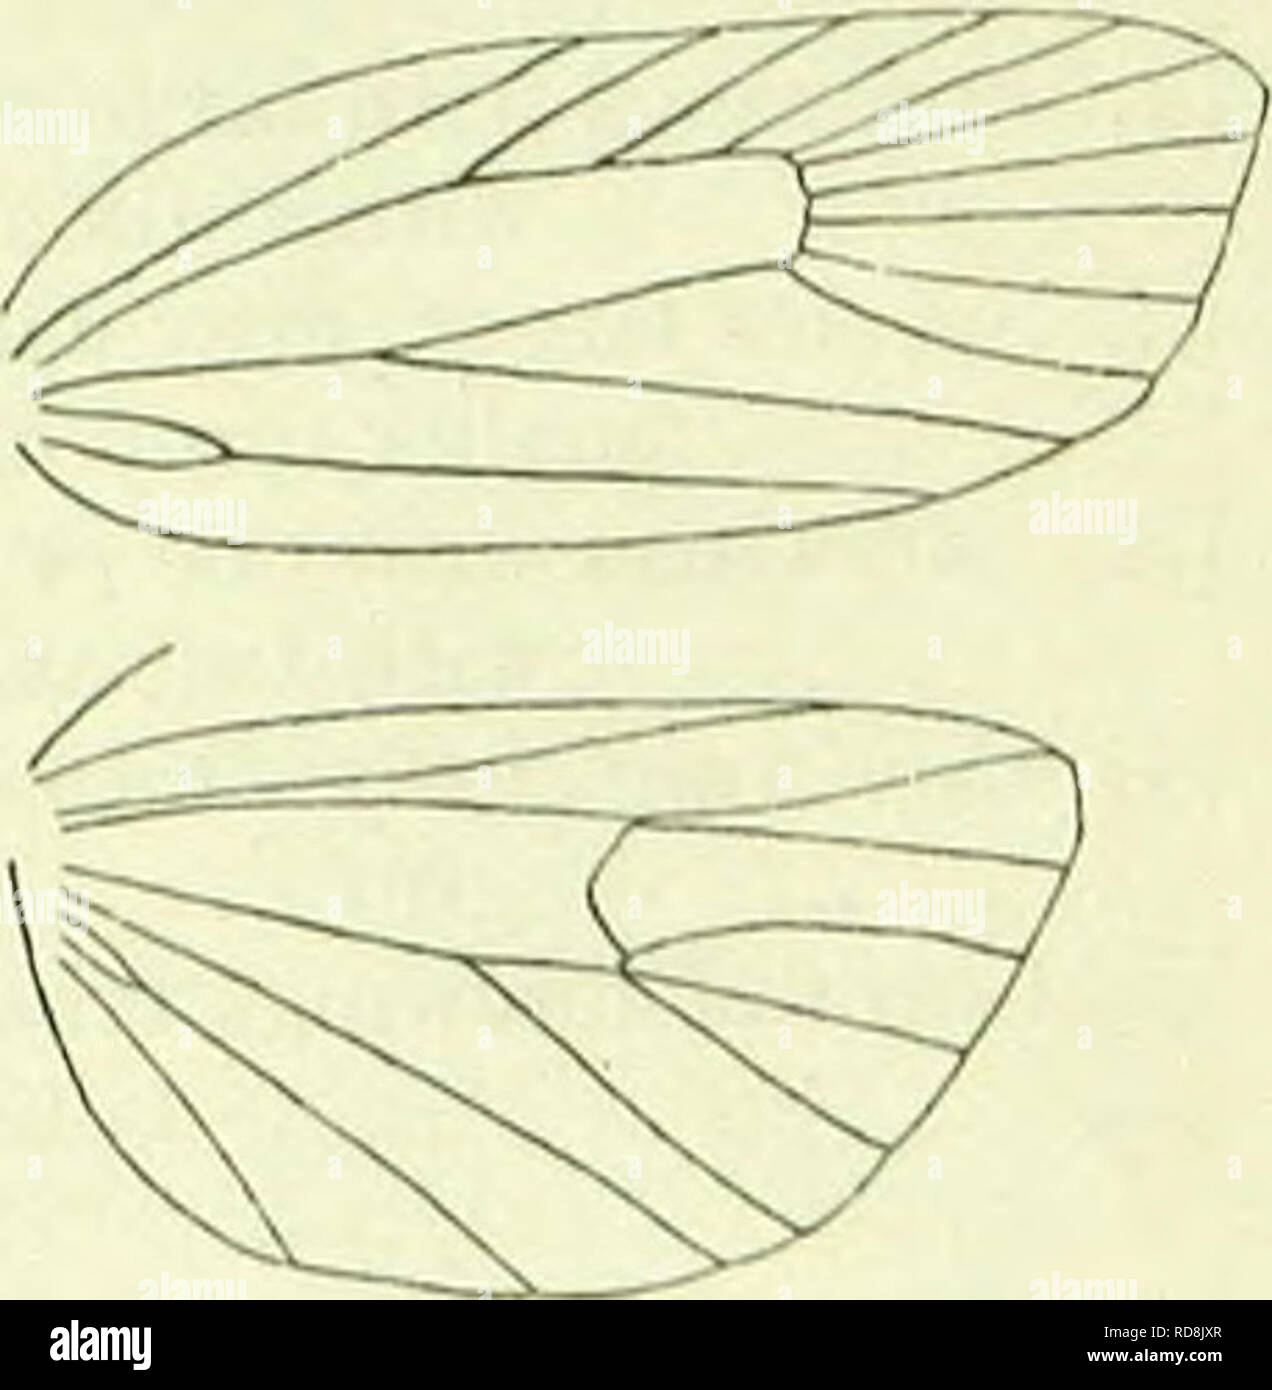 """. A handbook of British lepidoptera. Lepidoptera. TORTRICIDAE 9. Hindwings with 6 and 7 remote at base . 10. Isotbias. """" """" """" closely approximated or stalked . .10. 10. Hindvvings with 4 absent. 12. Chbimatoi-hila. """" """" present • • .11. 11. Tongue absent . . ' 11. Exapate. """" present . . .9. Tortkix. 1. KnAcoDiA, Hb. Antennae in $ shortly ciliated. Palpi moderately long, porrccted. Thorax with longitudinal posterior crest. Fore- wings without costal fold, costa broadly emarginatc beyond middle, surface with slight scale-tufts ; 7 to costa. Hindwings: 3 and 4 connate, 5 closely approximated to 4,  - Stock Image"""